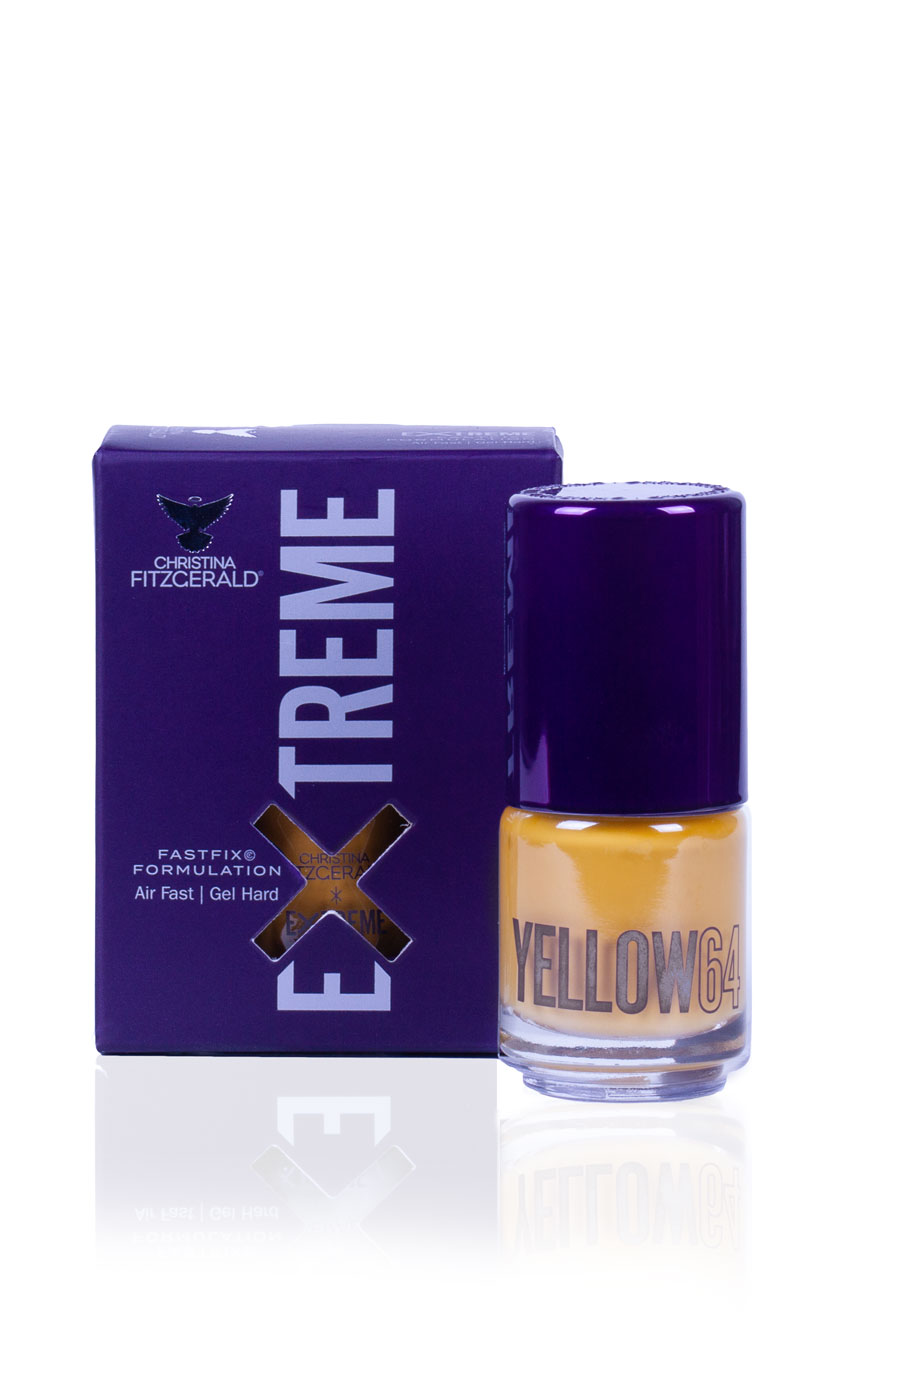 Лак для ногтей Extreme - Yellow 64 в интернет-магазине Authentica.love